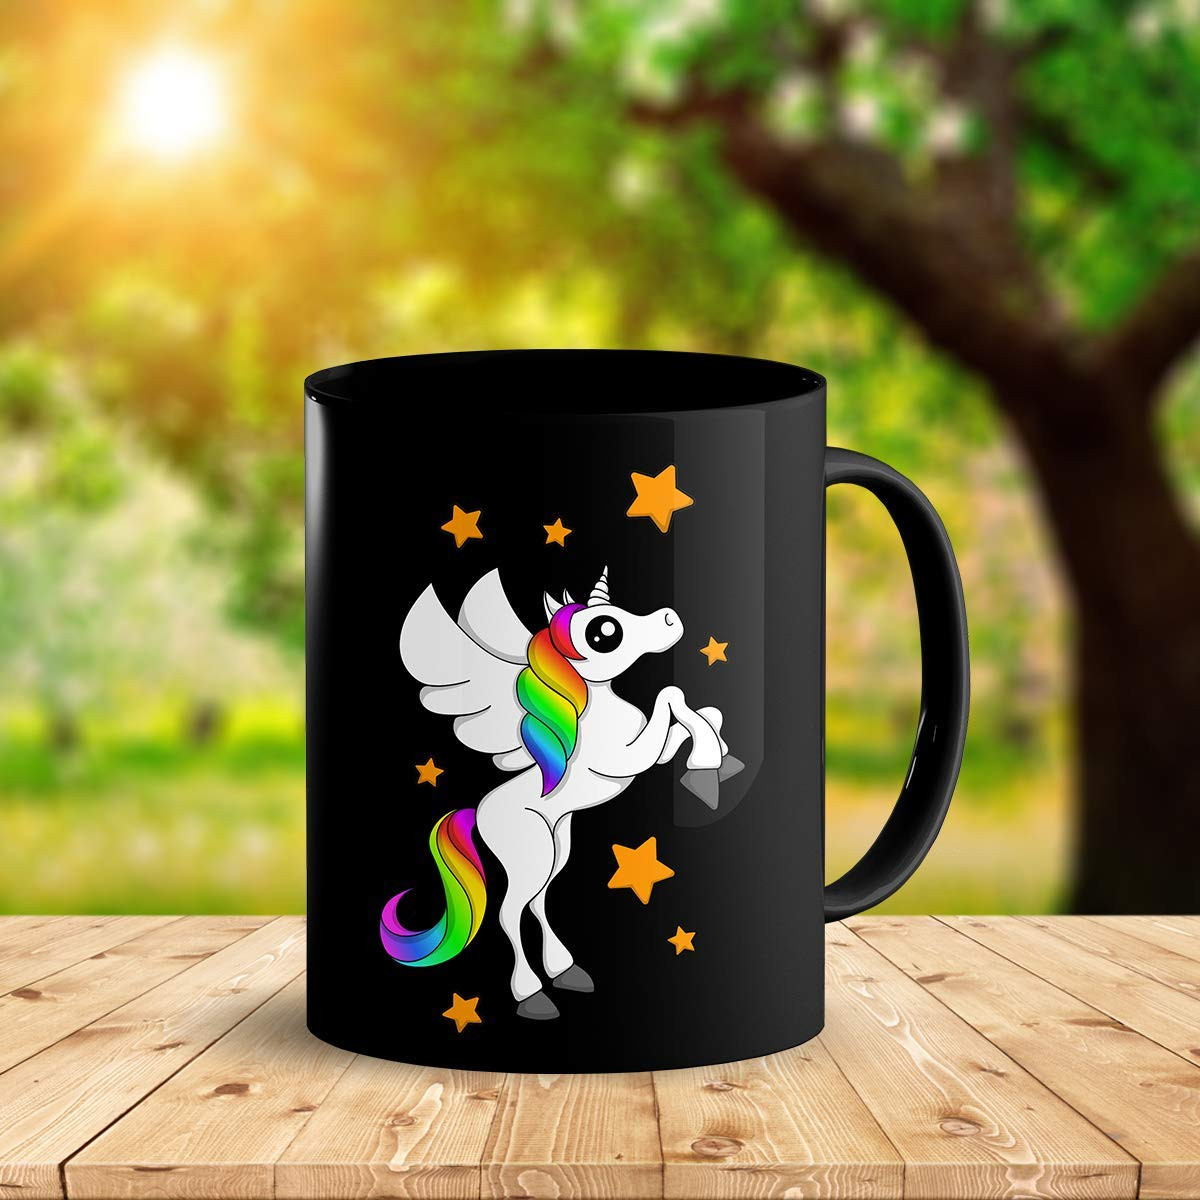 Heat Sensitive Color Changing Coffee Mug Funny Coffee Cup Black Unicorn Design Funny Gift Idea B07D21DSFL 2